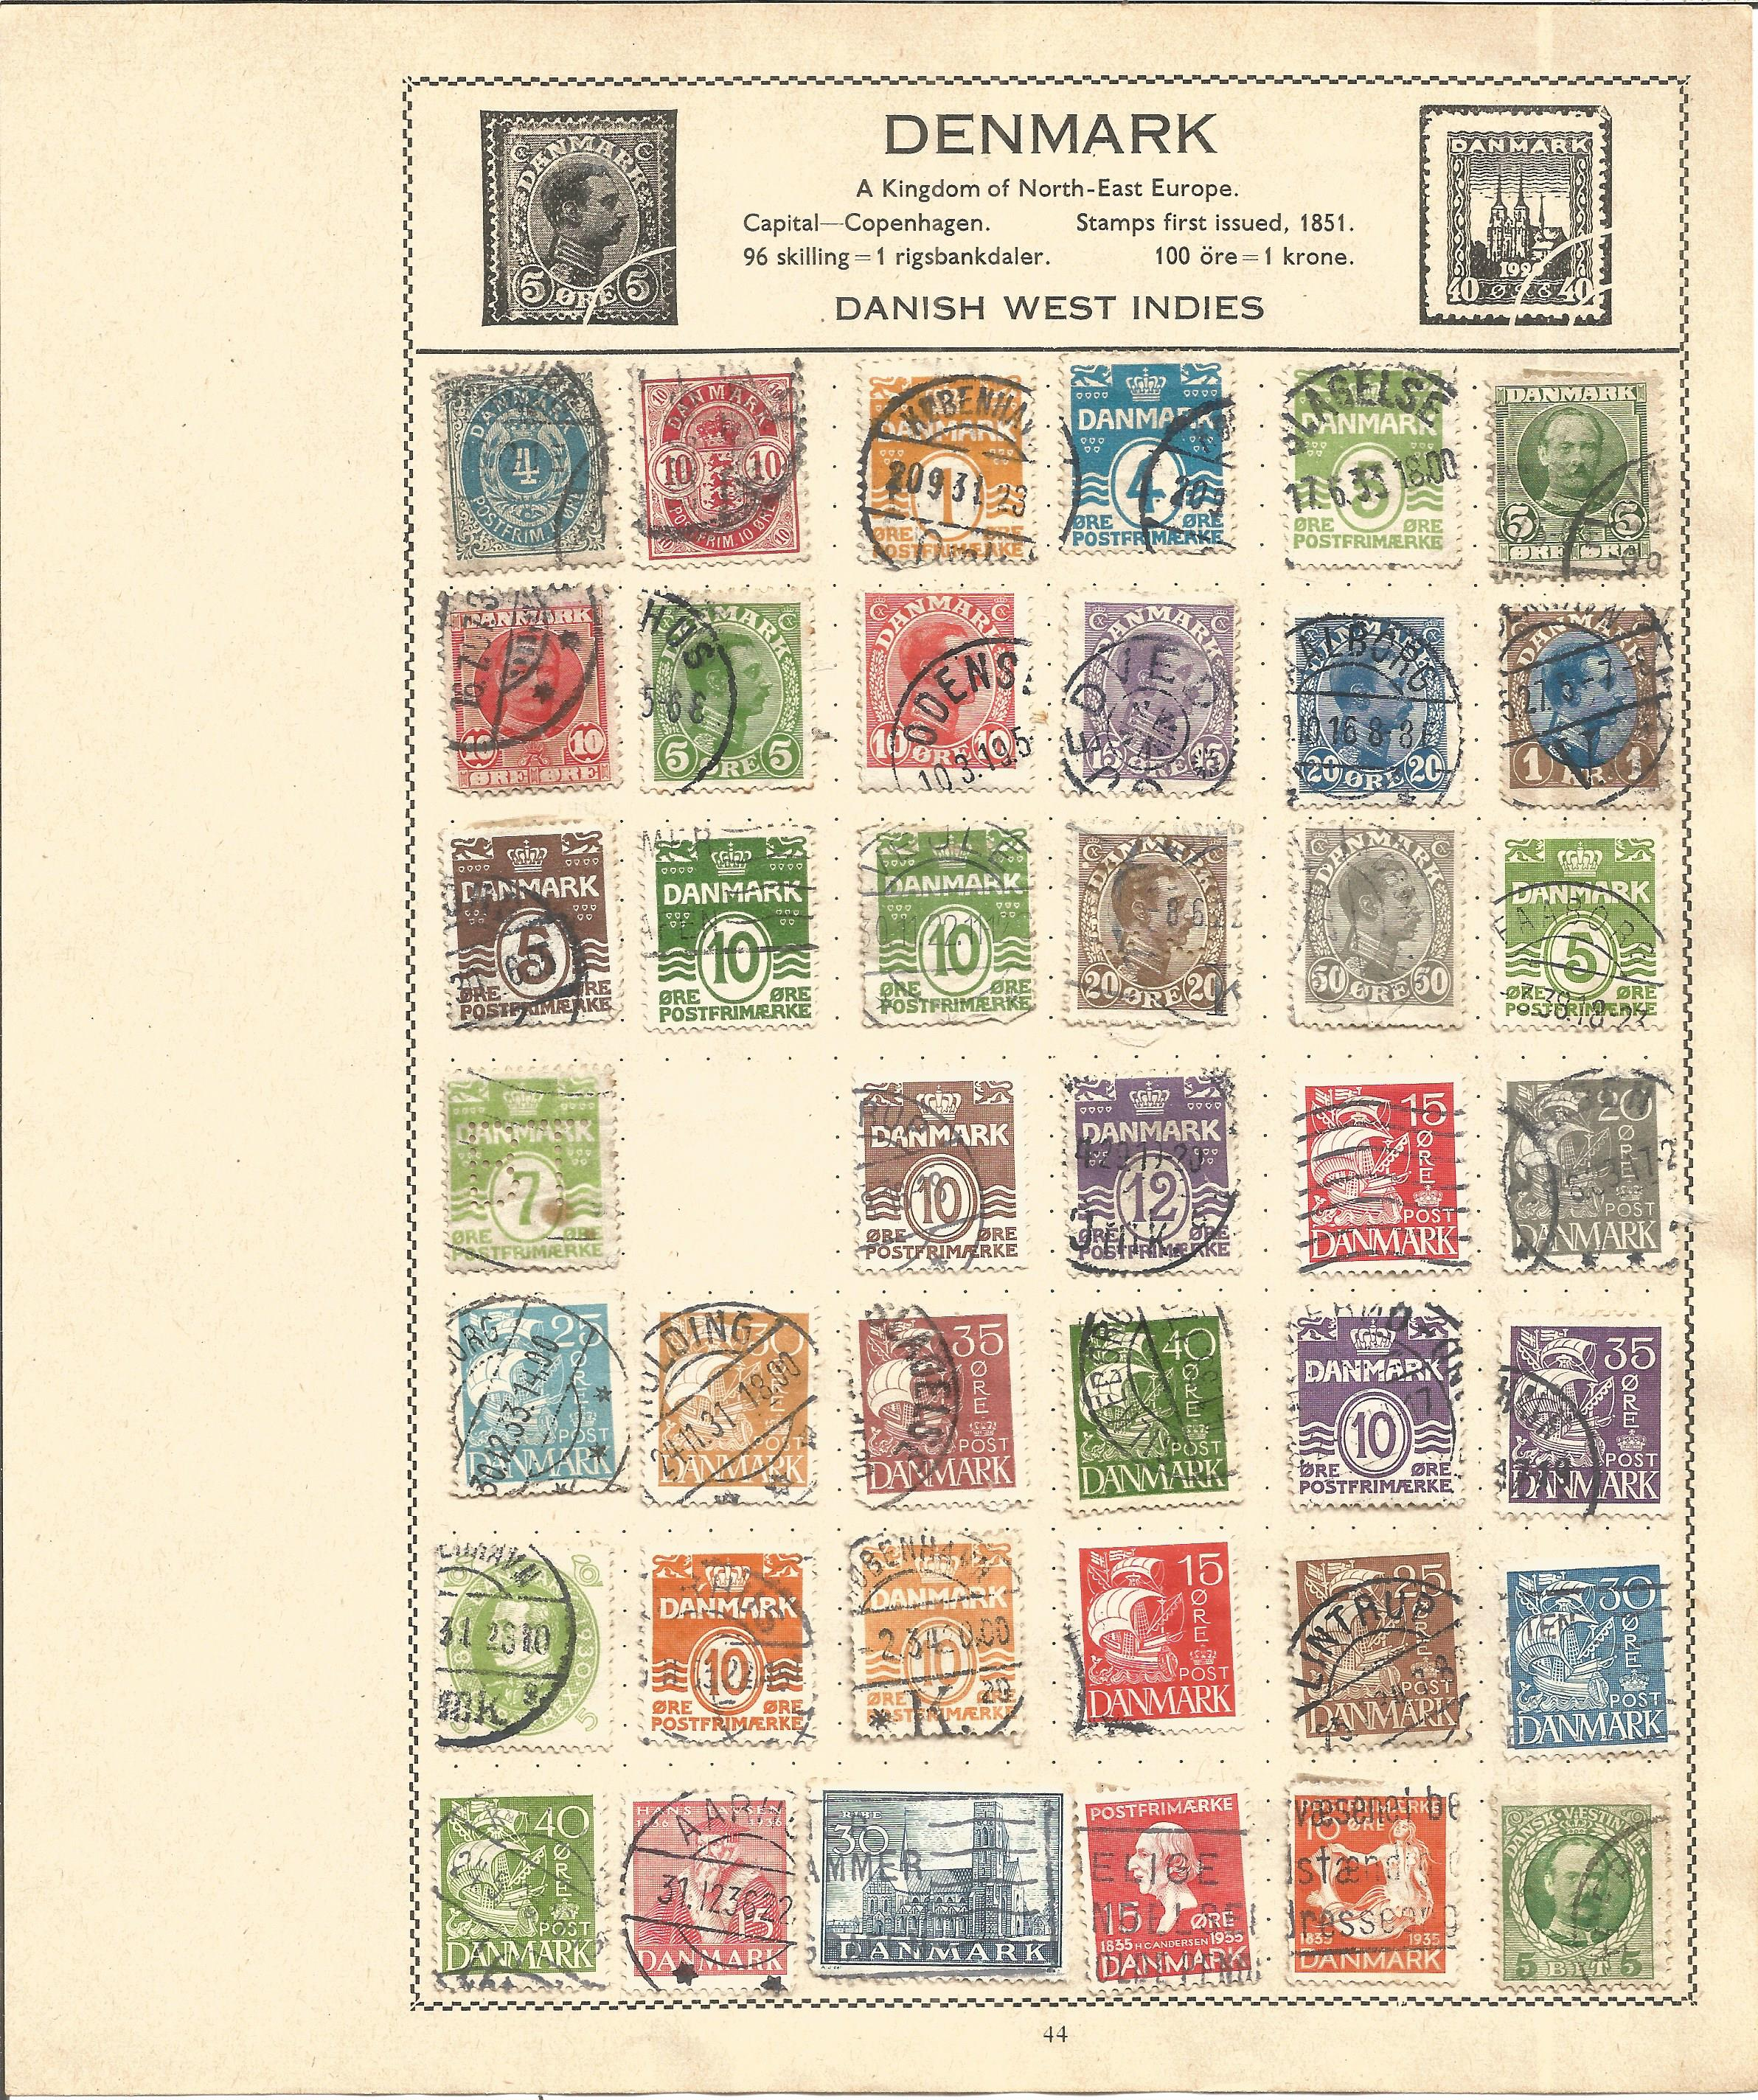 European Stamp collection 5 loose album leaves countries include Denmark and Norway. Good condition.